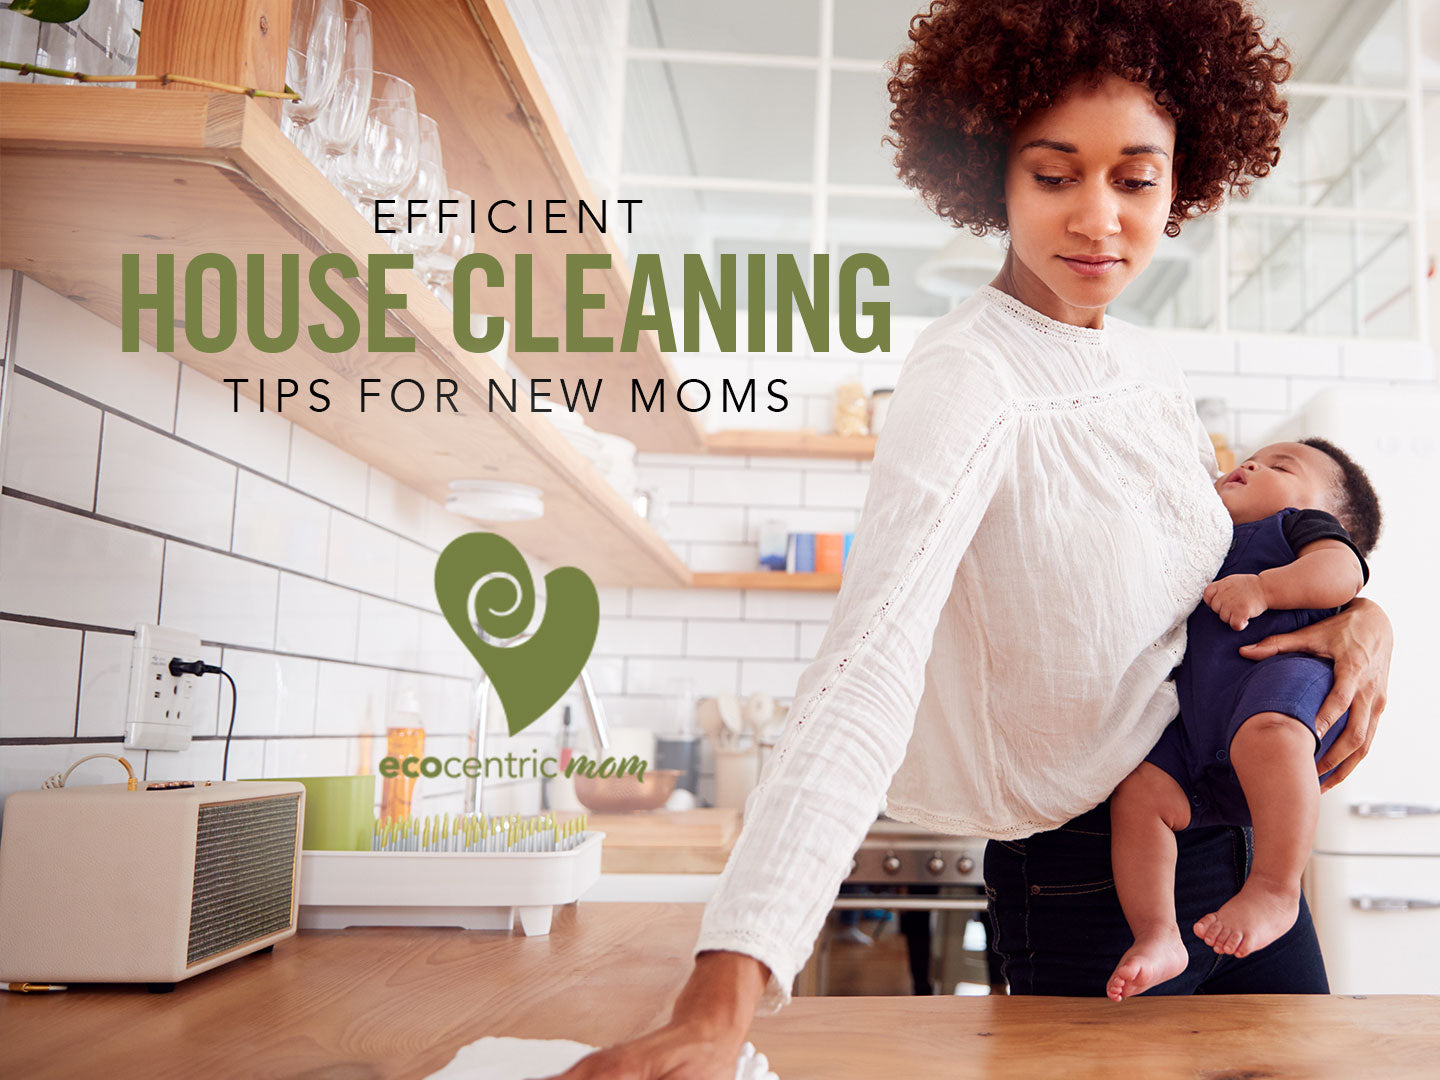 Efficient House Cleaning Tips for New Moms